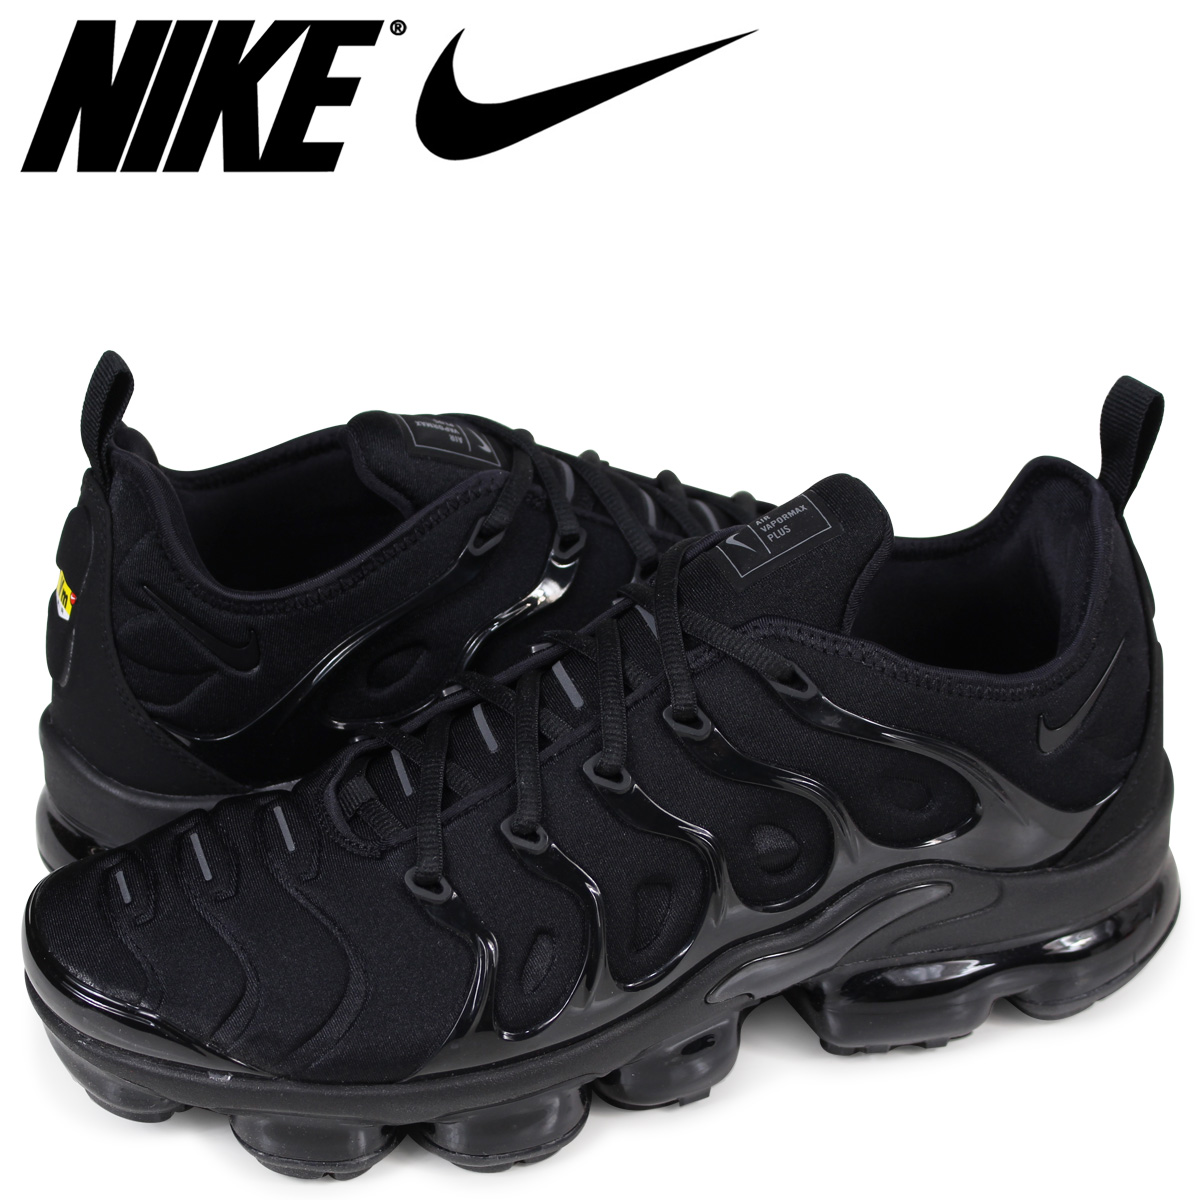 best authentic 31d63 7590a NIKE AIR VAPORMAX PLUS Nike air vapor max plus sneakers men black  924,453-004